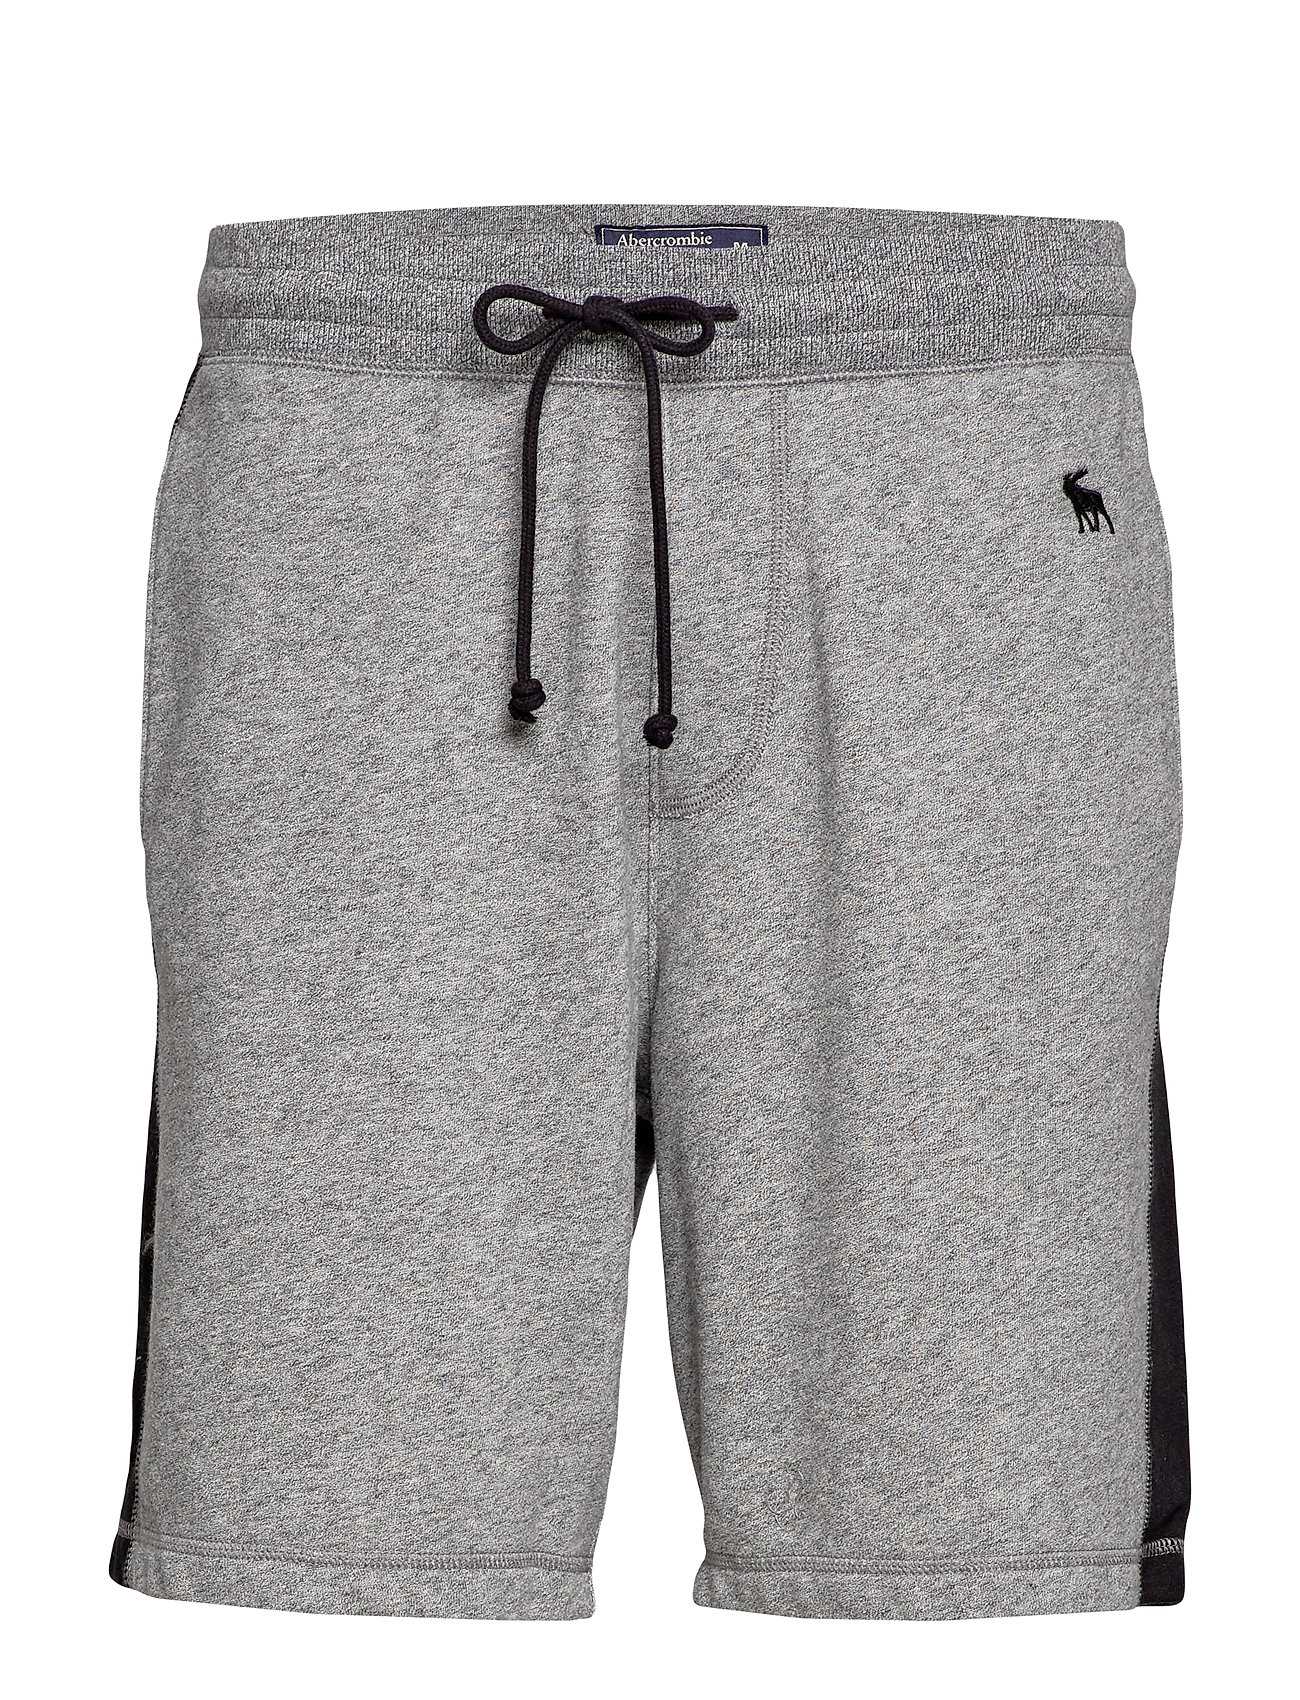 Abercrombie & Fitch Logo Short - MED GREY SD/TEXTURE